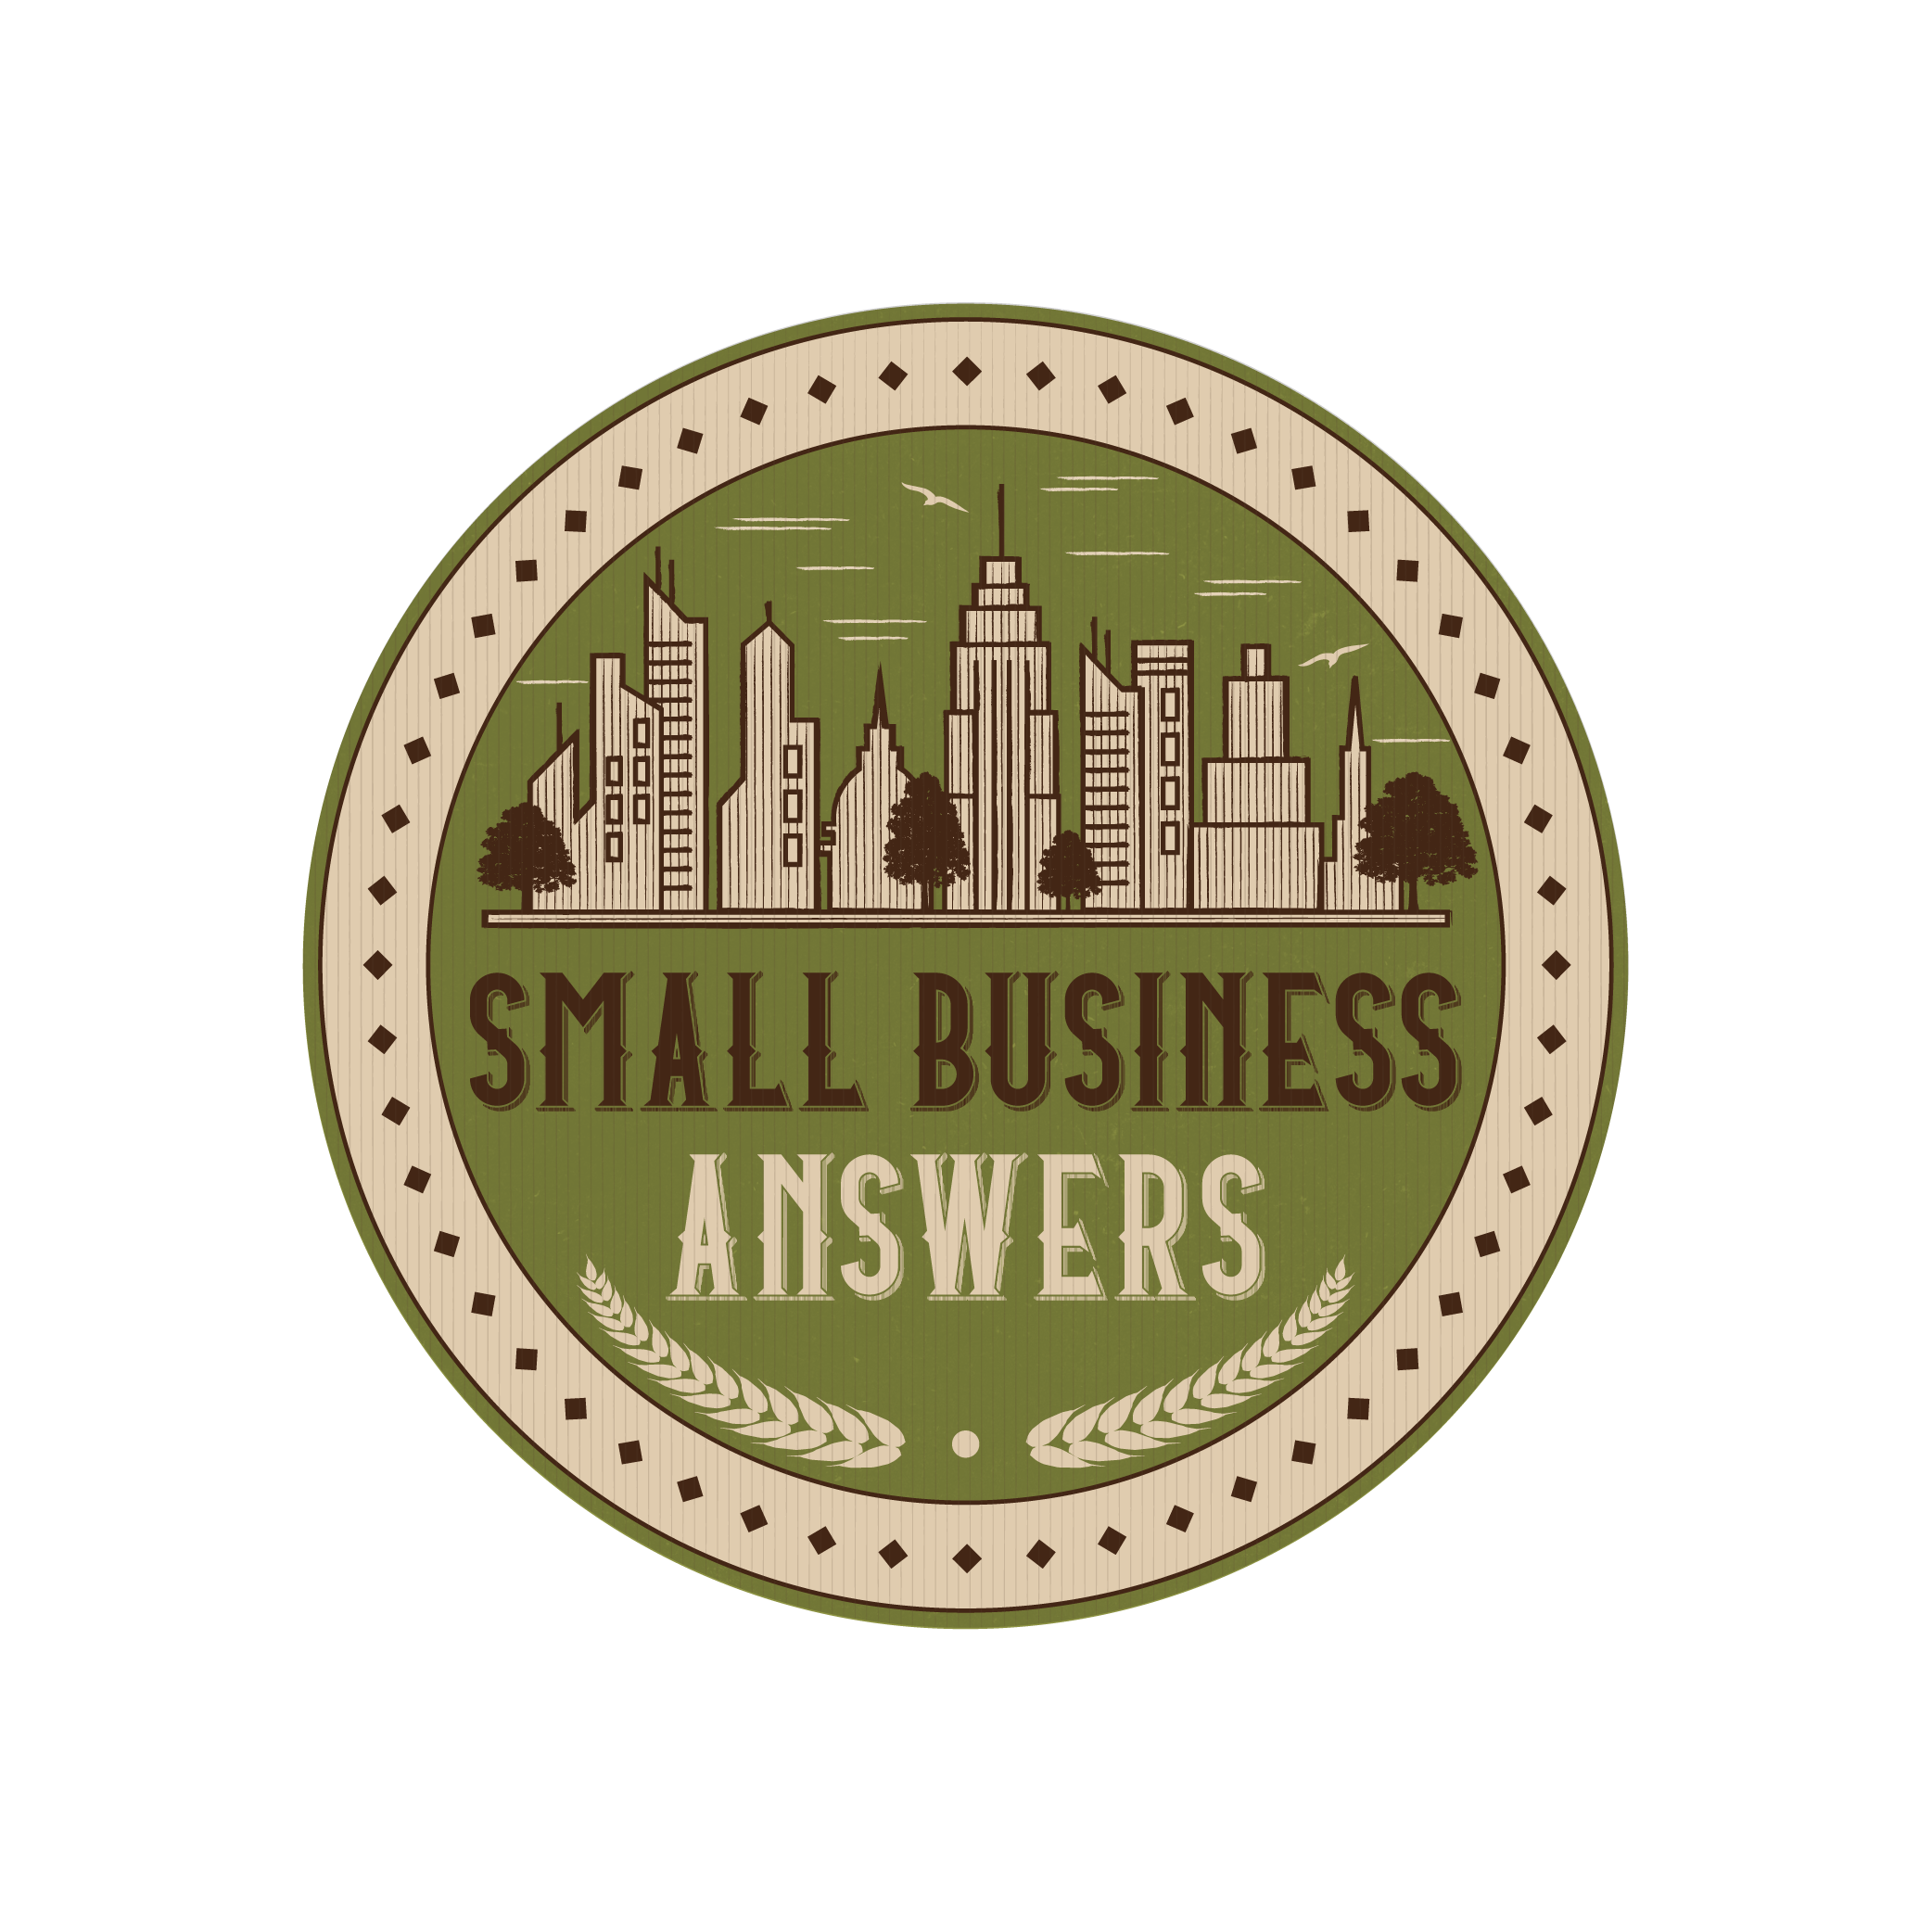 Diagram Small Business Answers